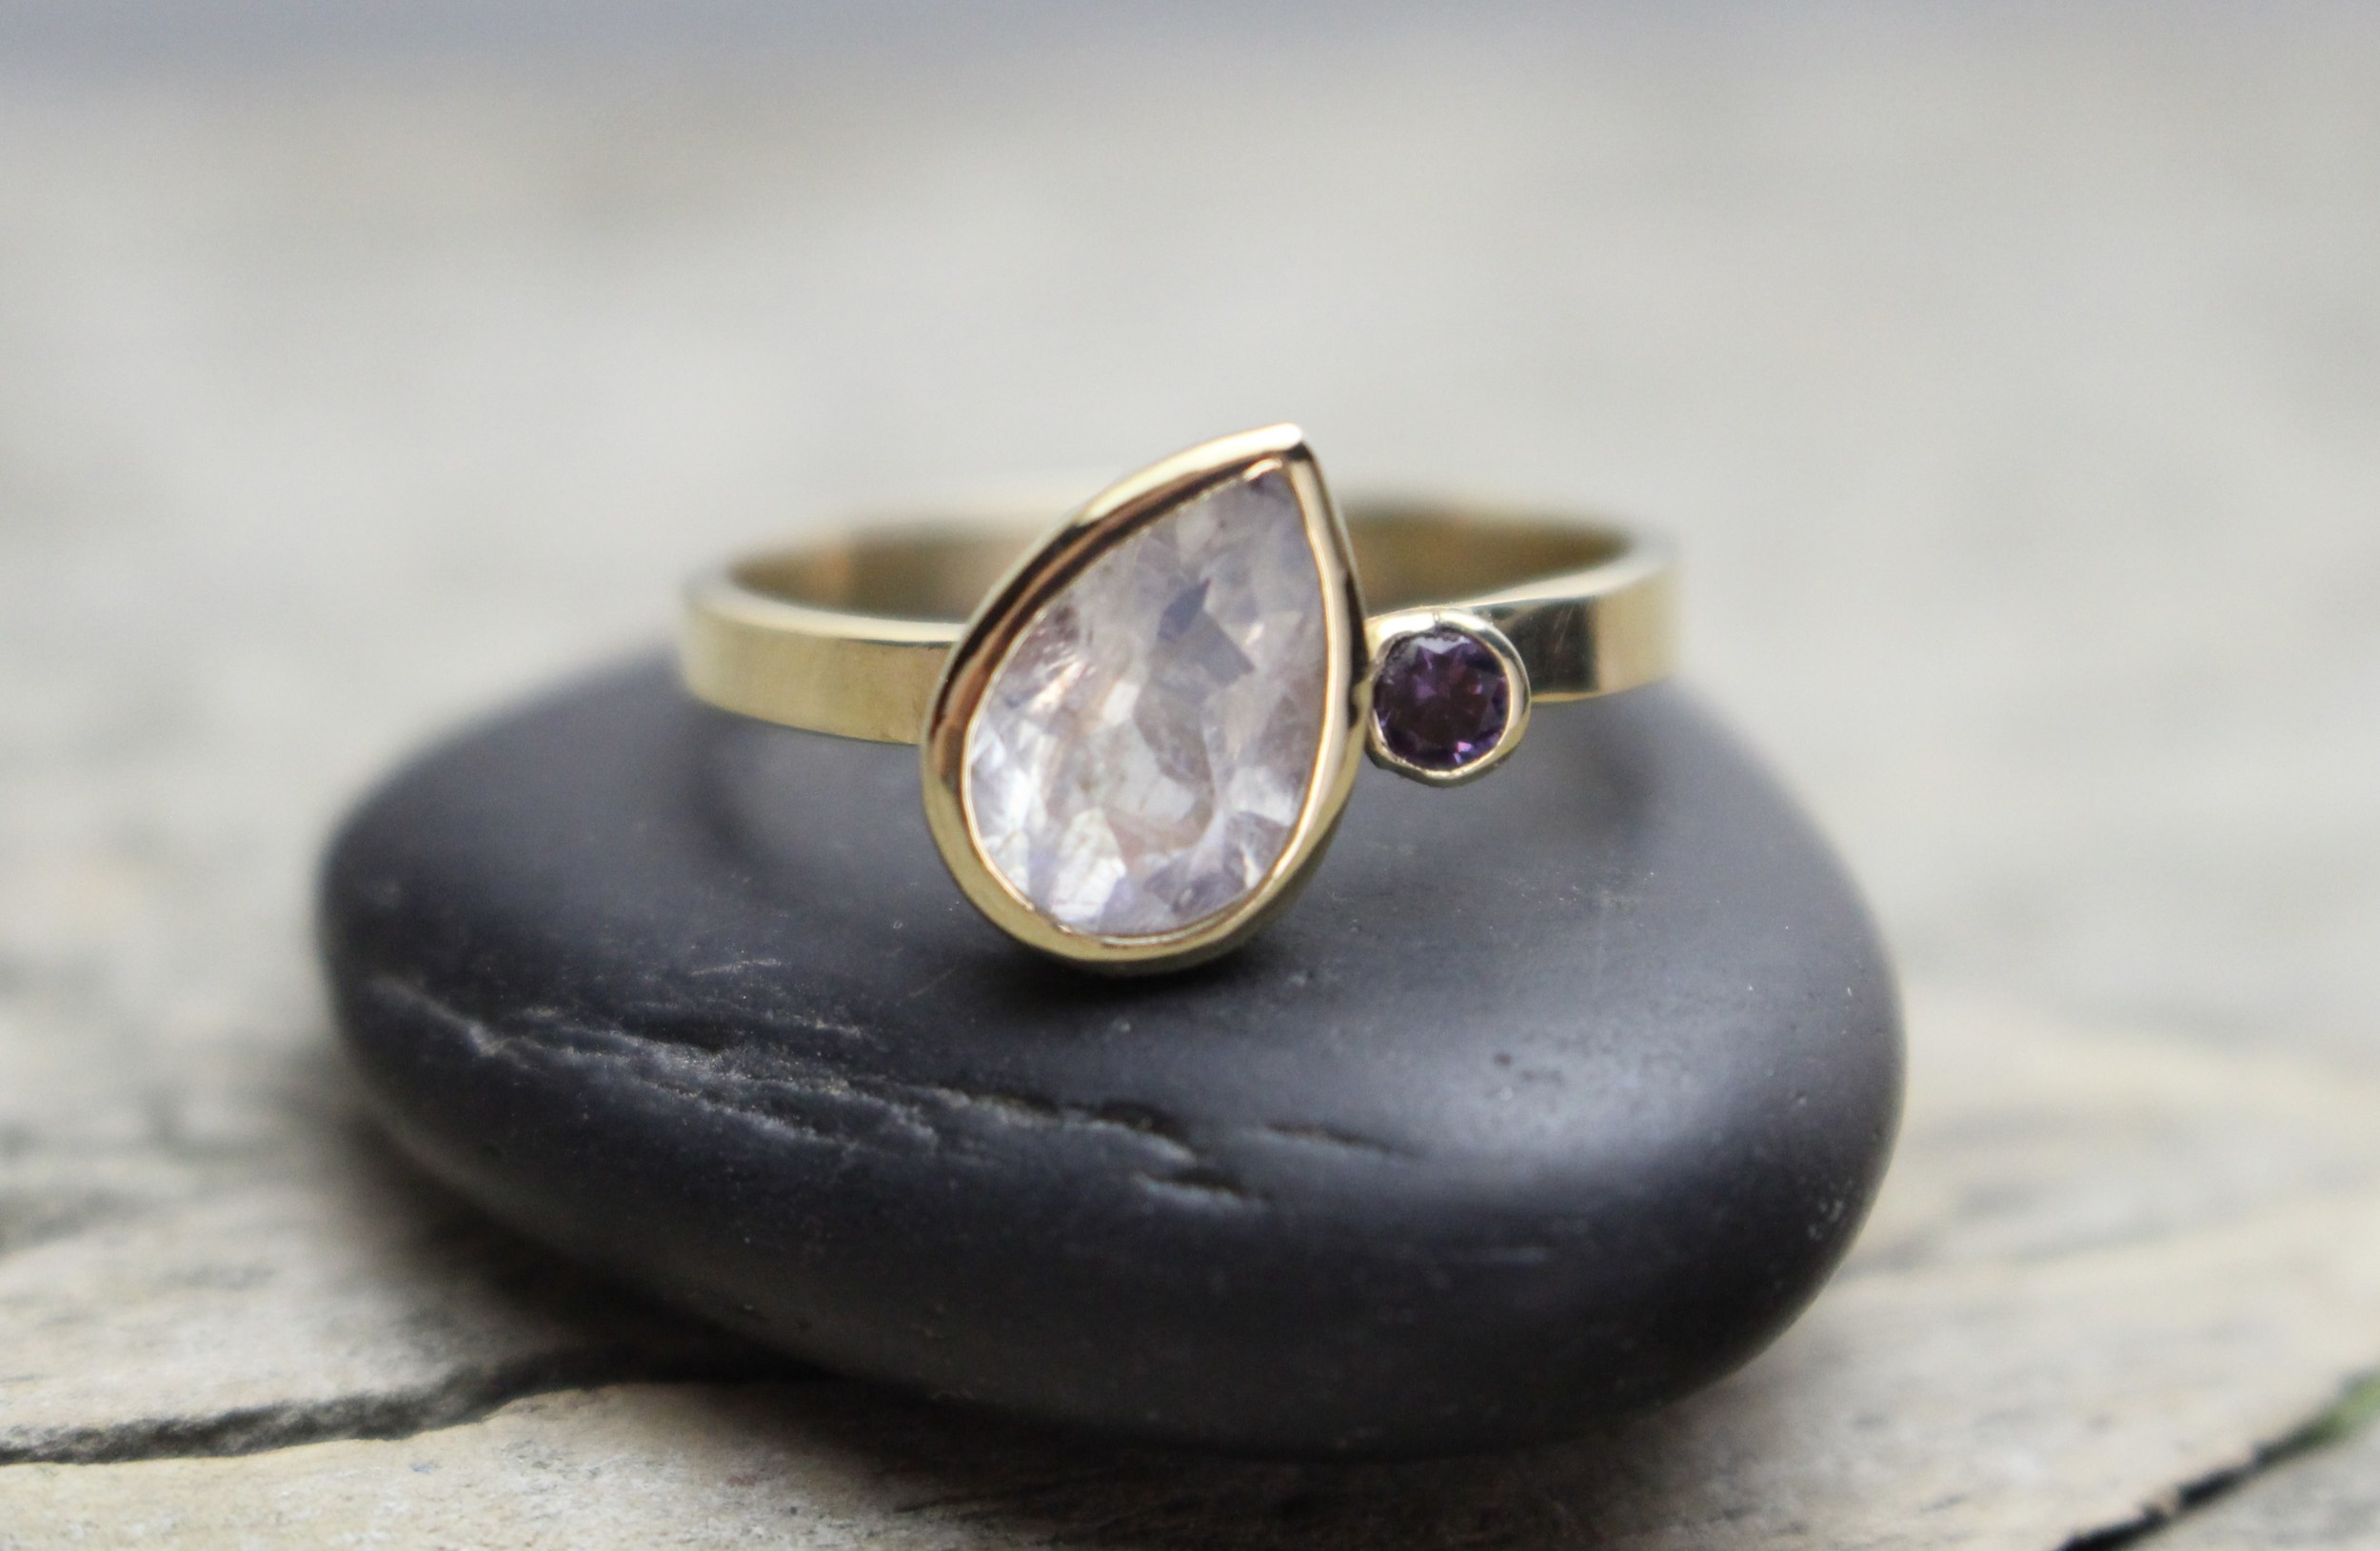 geode ring, moonstone alexandrite ring, aqua ring, r diamond rin 105.JPG